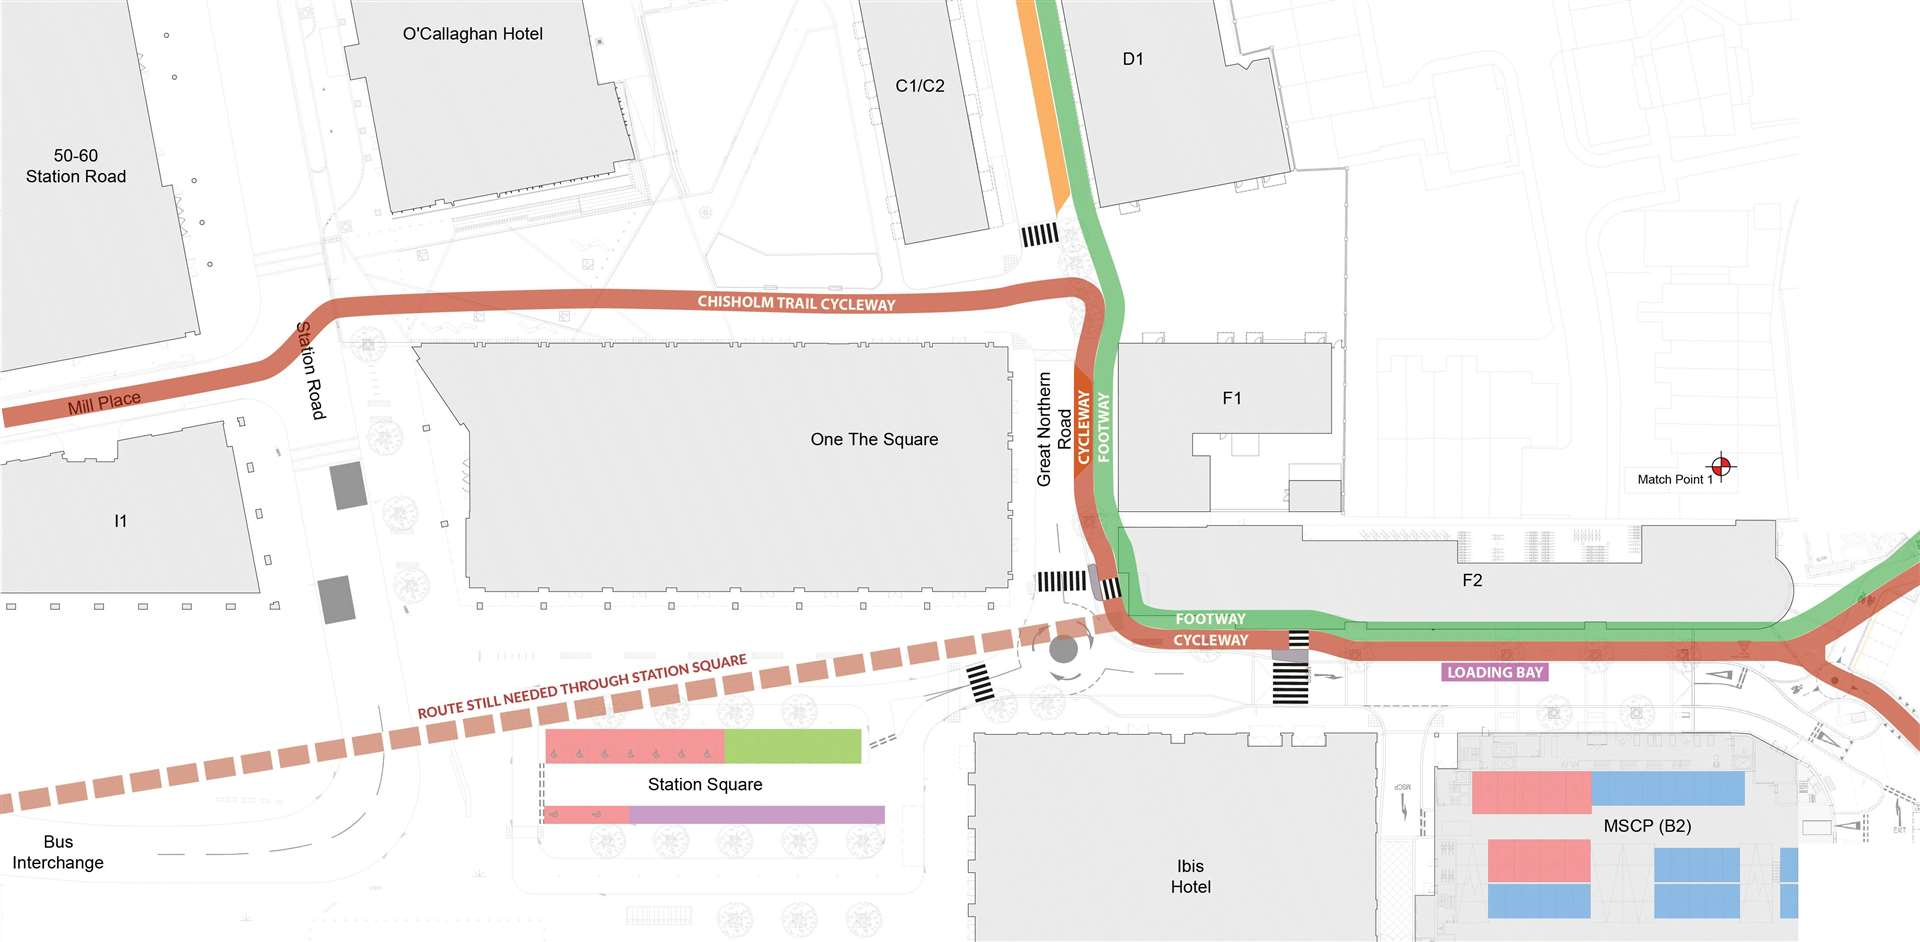 Smarter Cambridge Transport and Camcycle propose a cycle and walking route through the Devonshire Quarter that avoids the mini roundabout (42745804)